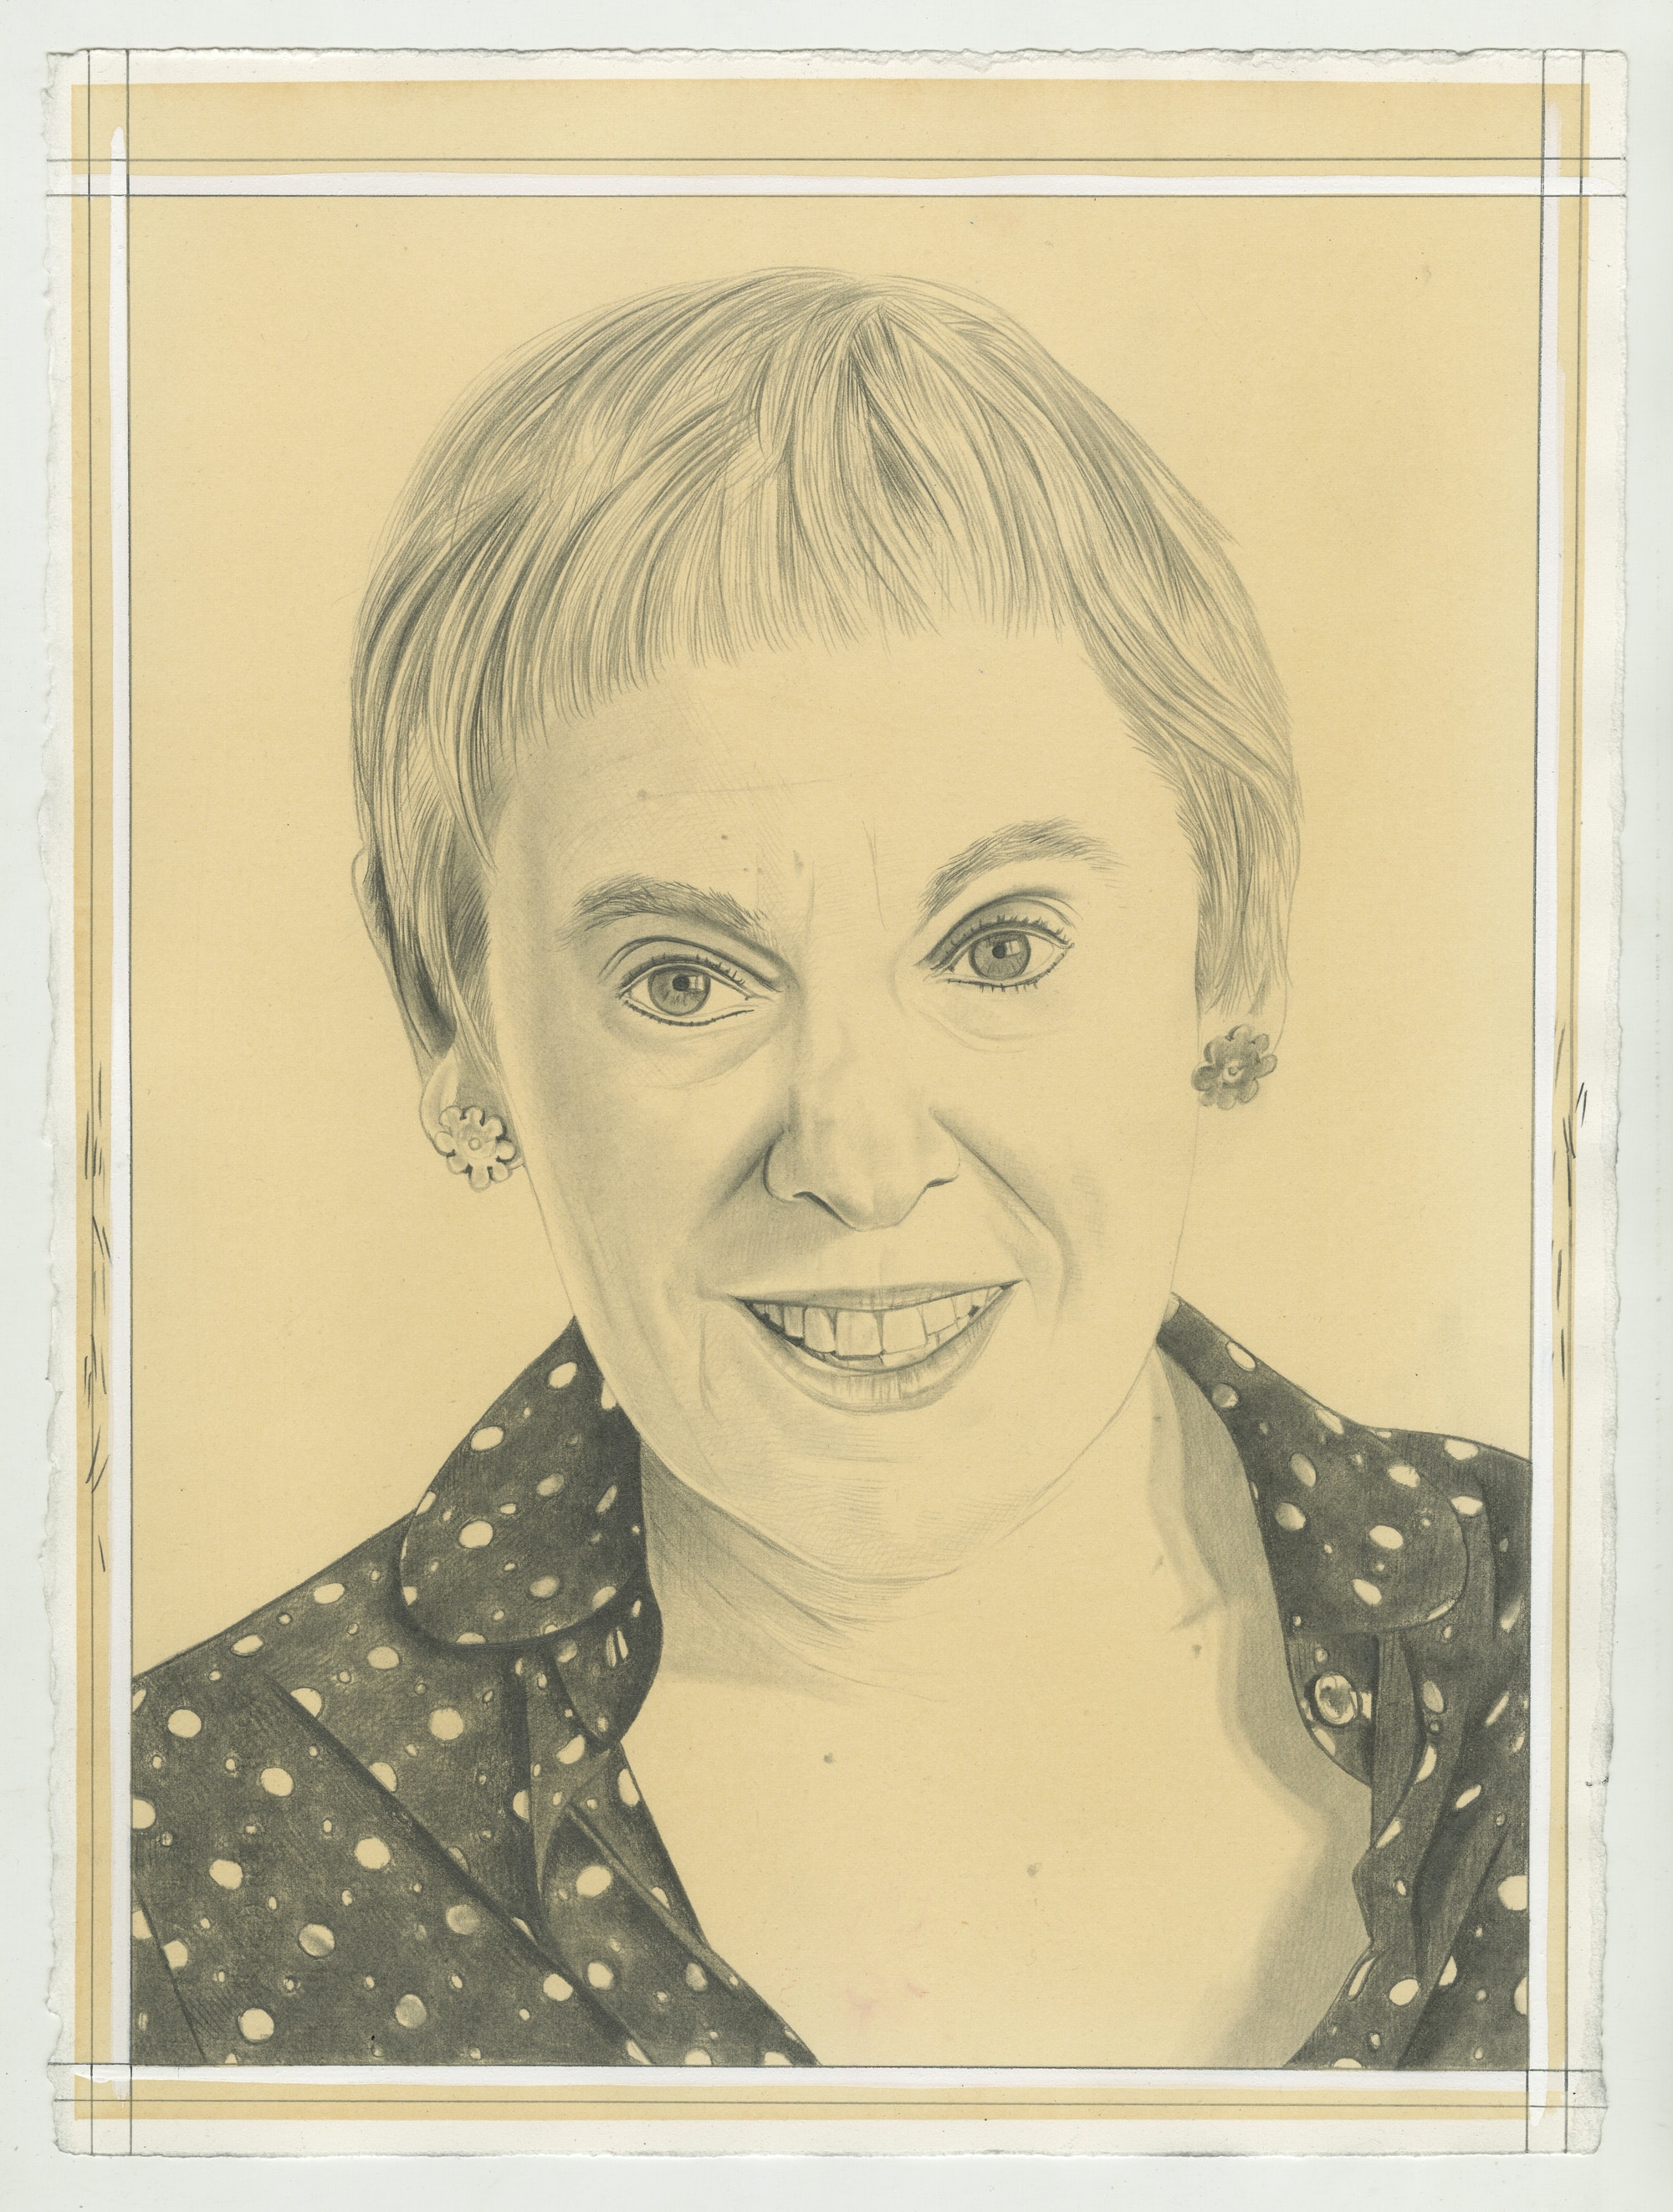 Portrait of Mira Schor. Pencil on paper by Phong Bui.